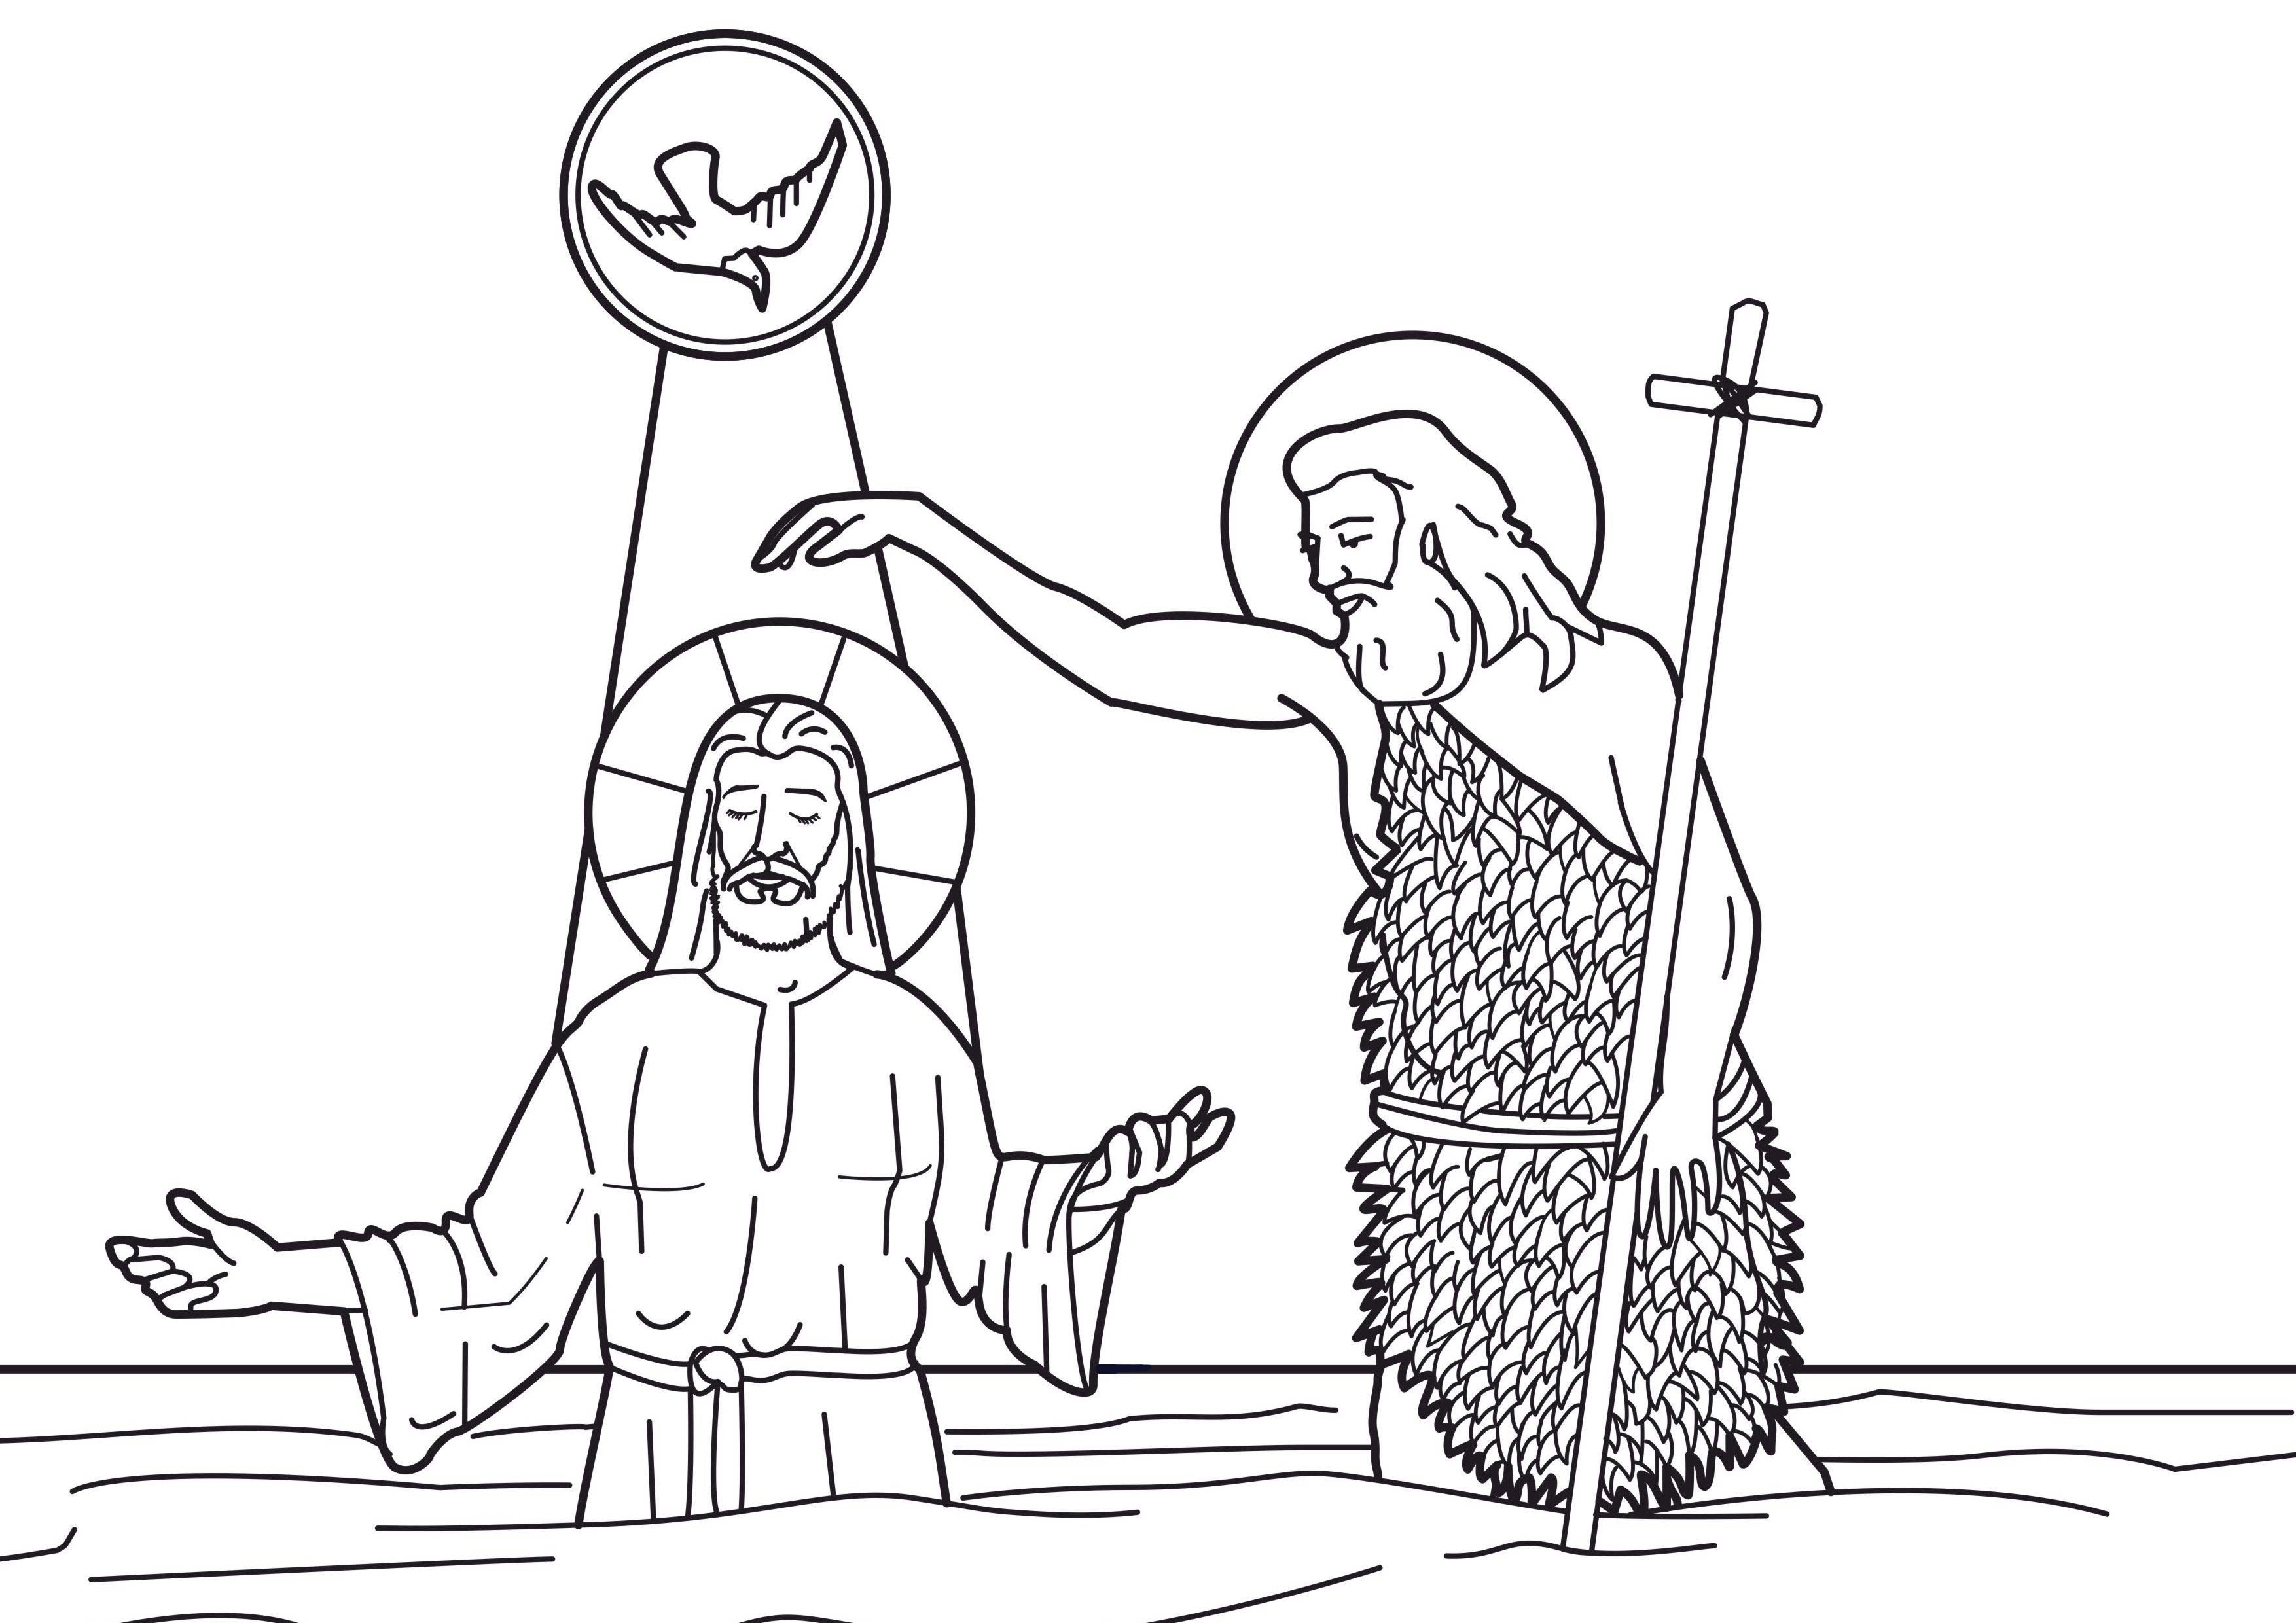 Baptism Of Christ In The River Jordan With Saint John The Baptist Catholic Coloring Page Catholic Coloring Bible Coloring Pages Baptism Pictures